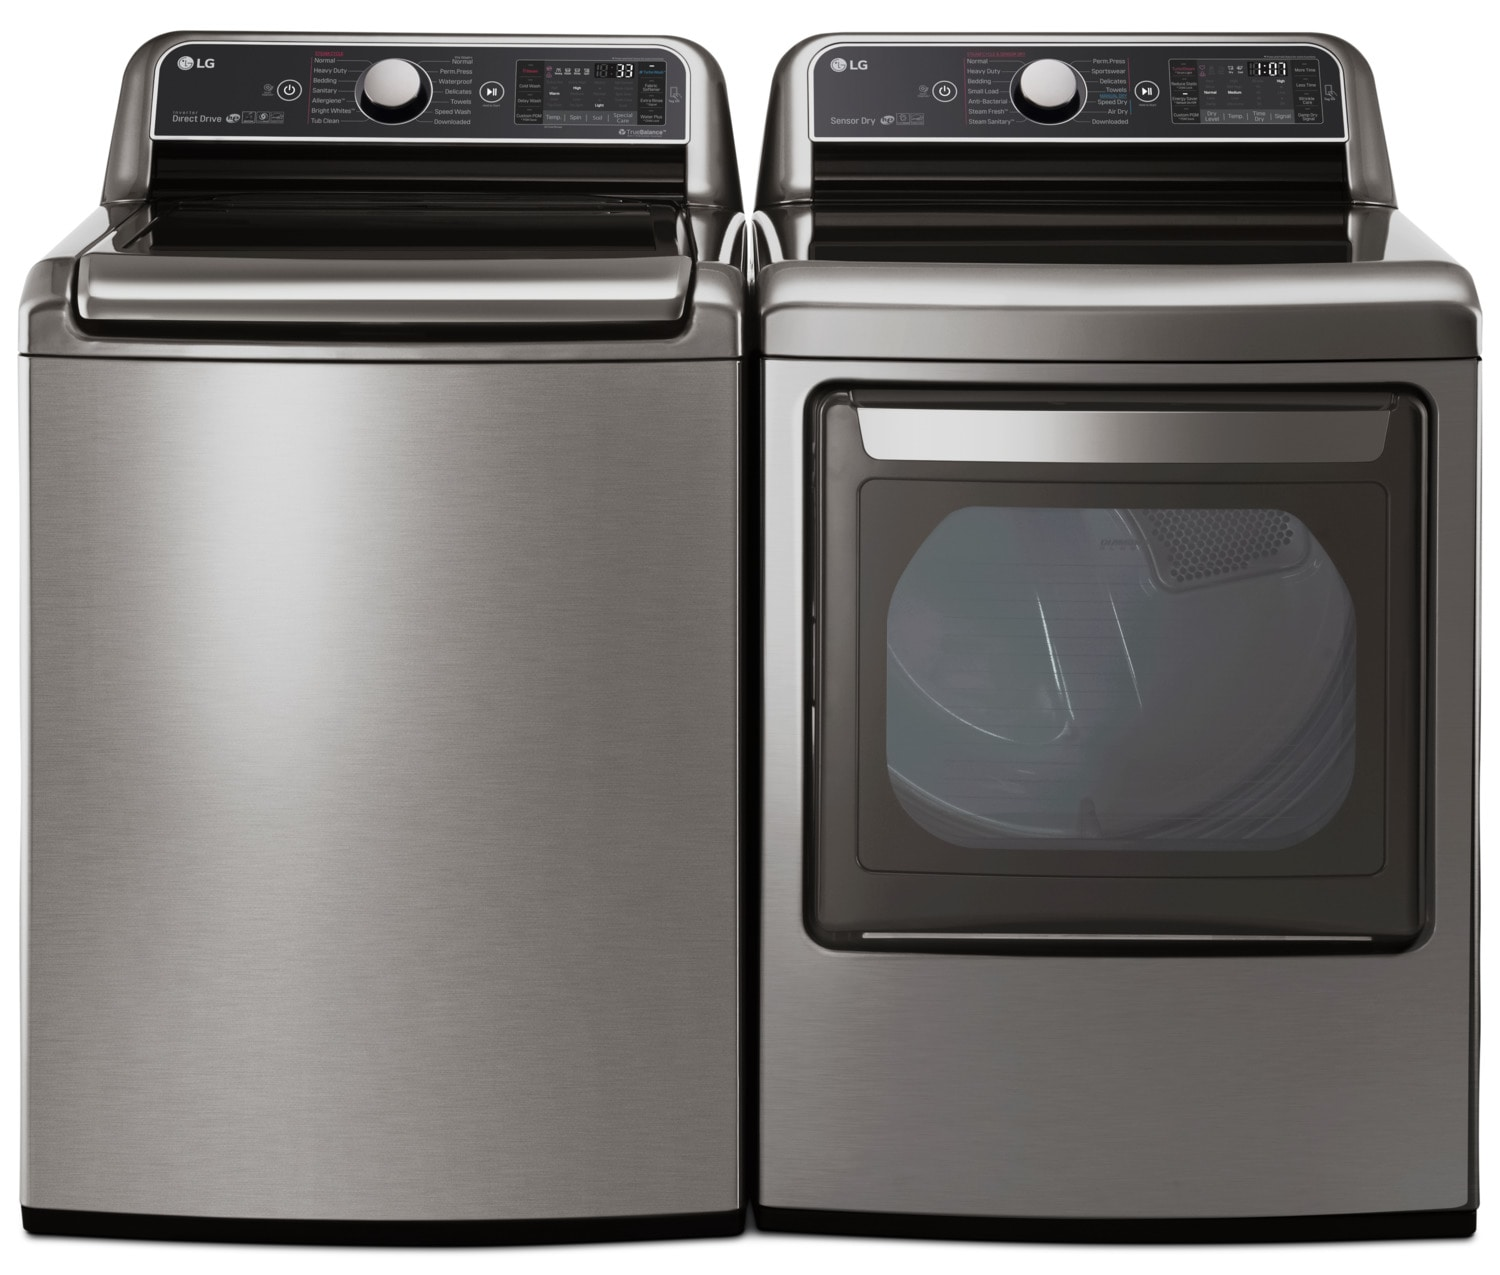 LG 6.0 Cu. Ft. Top-Load Steam™ Washer and 7.3 Cu. Ft. TurboSteam™ Electric Dryer